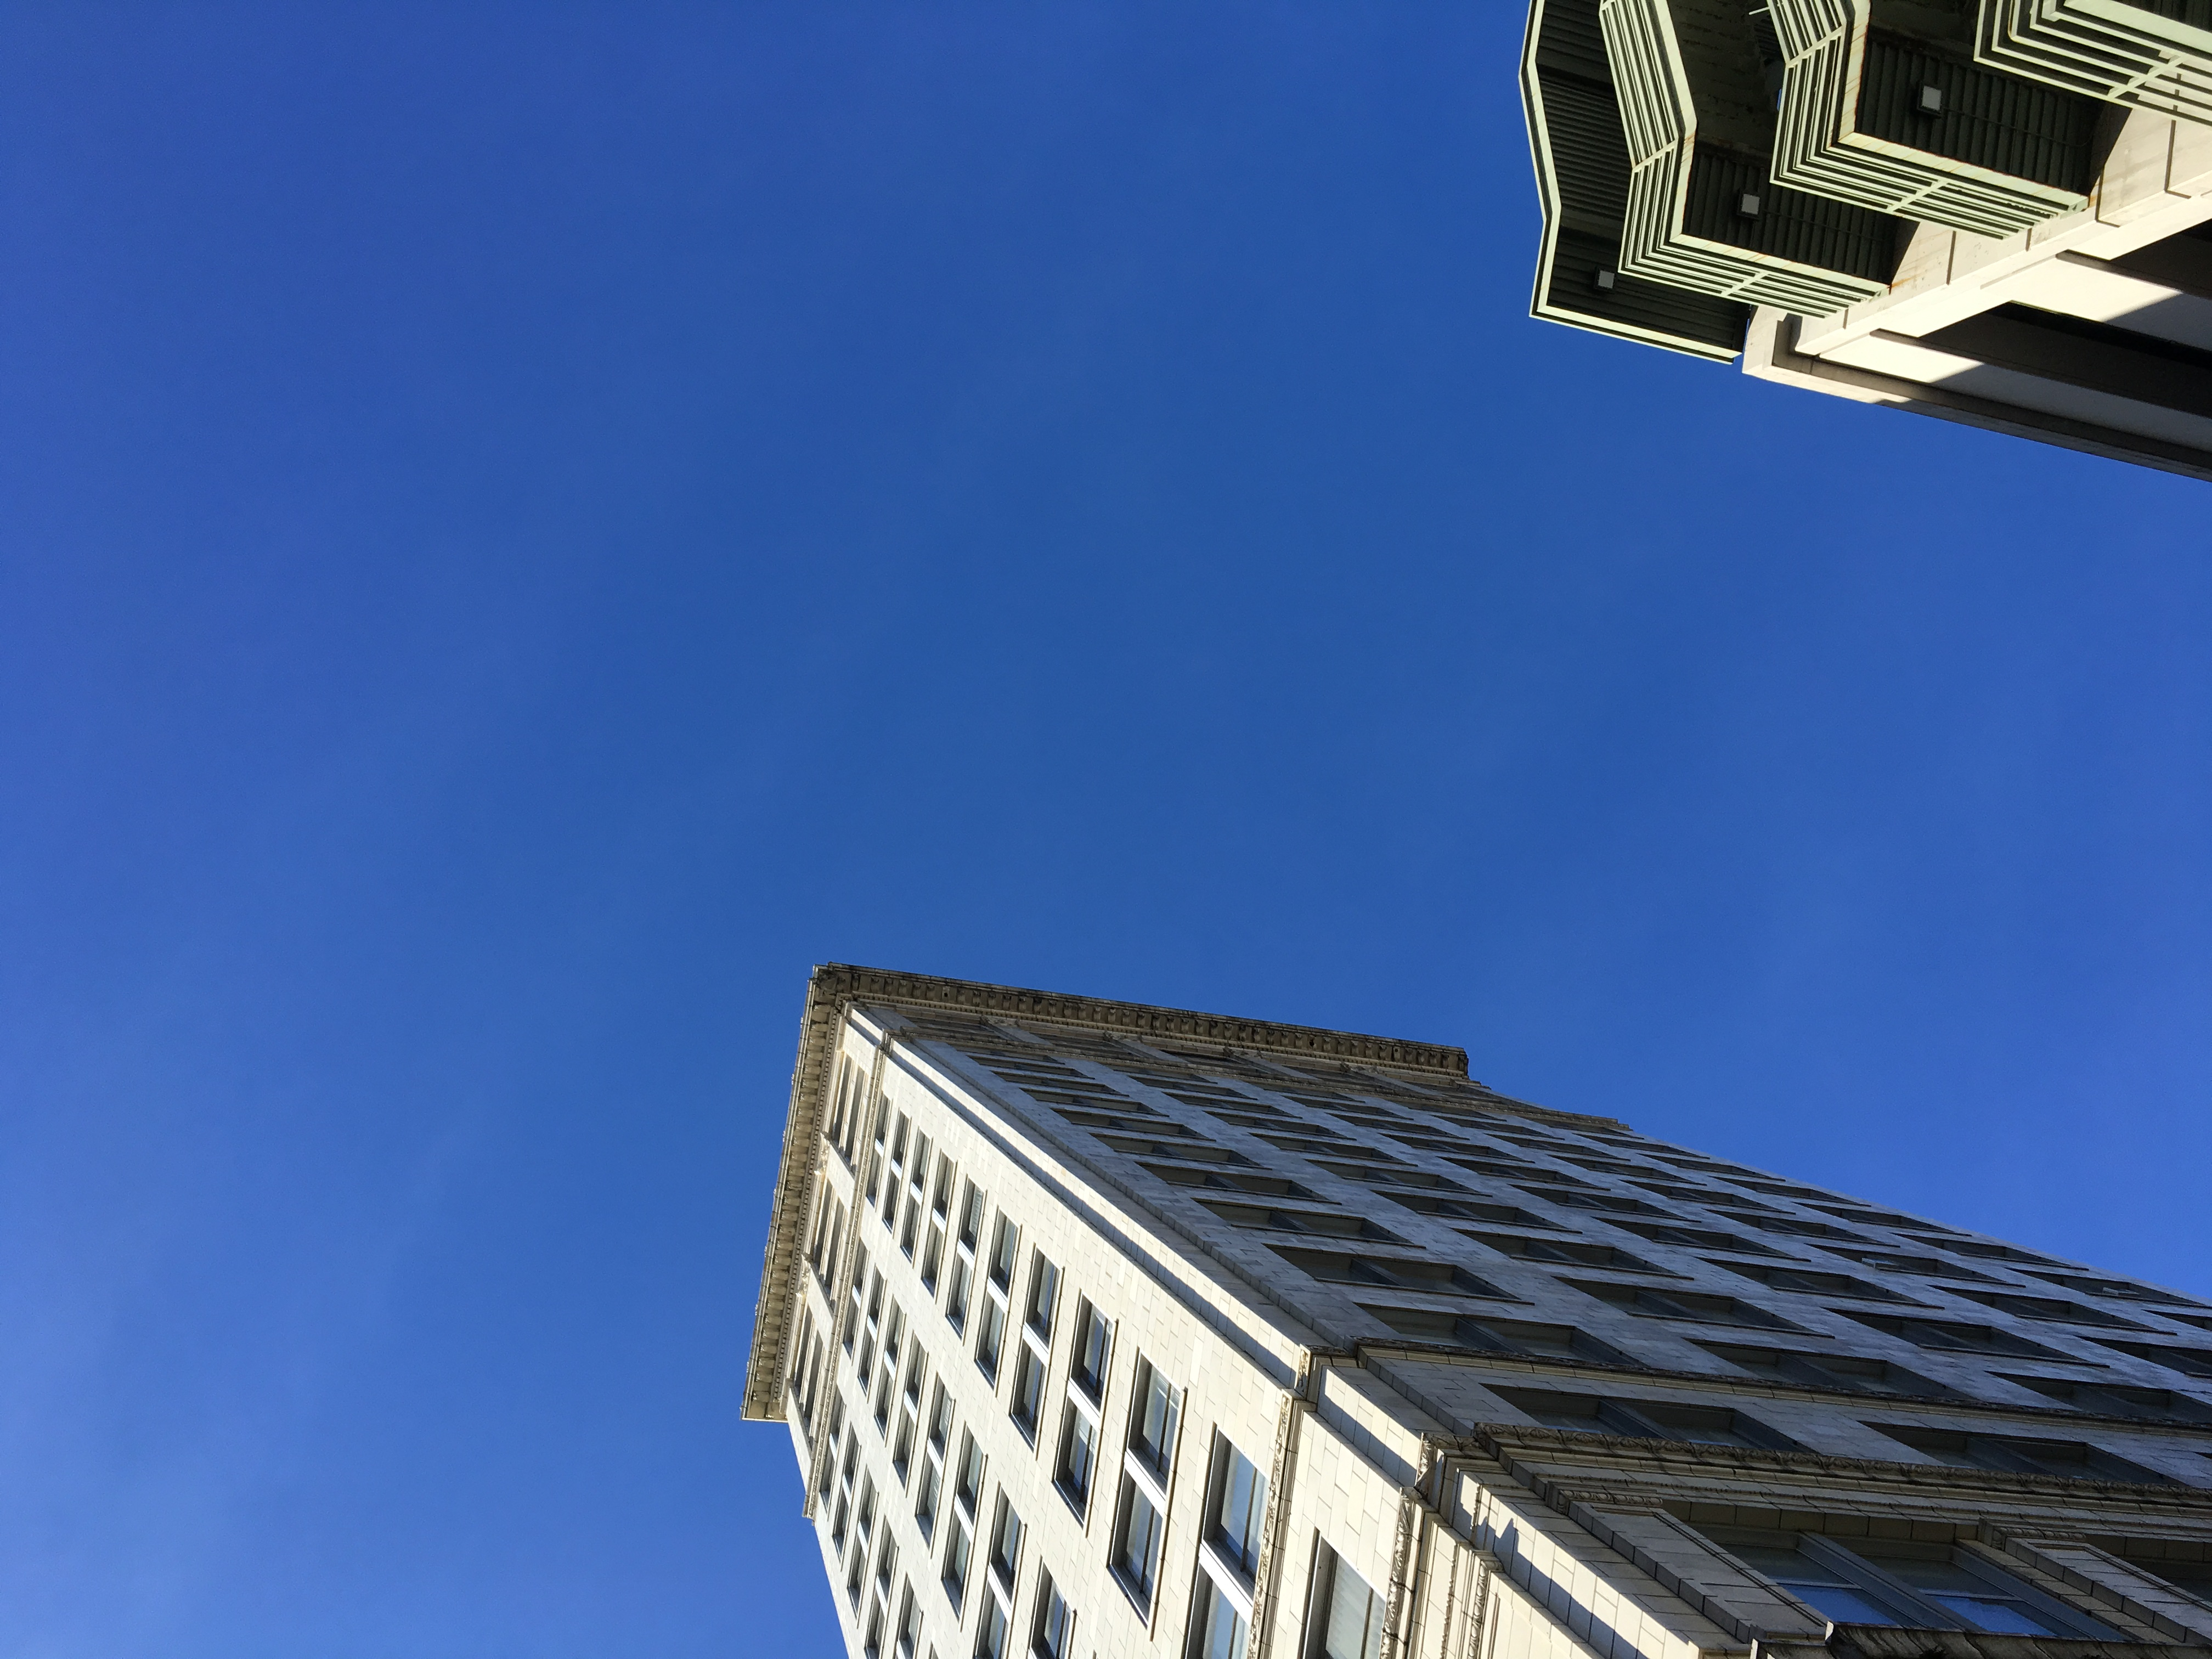 From the sunroof